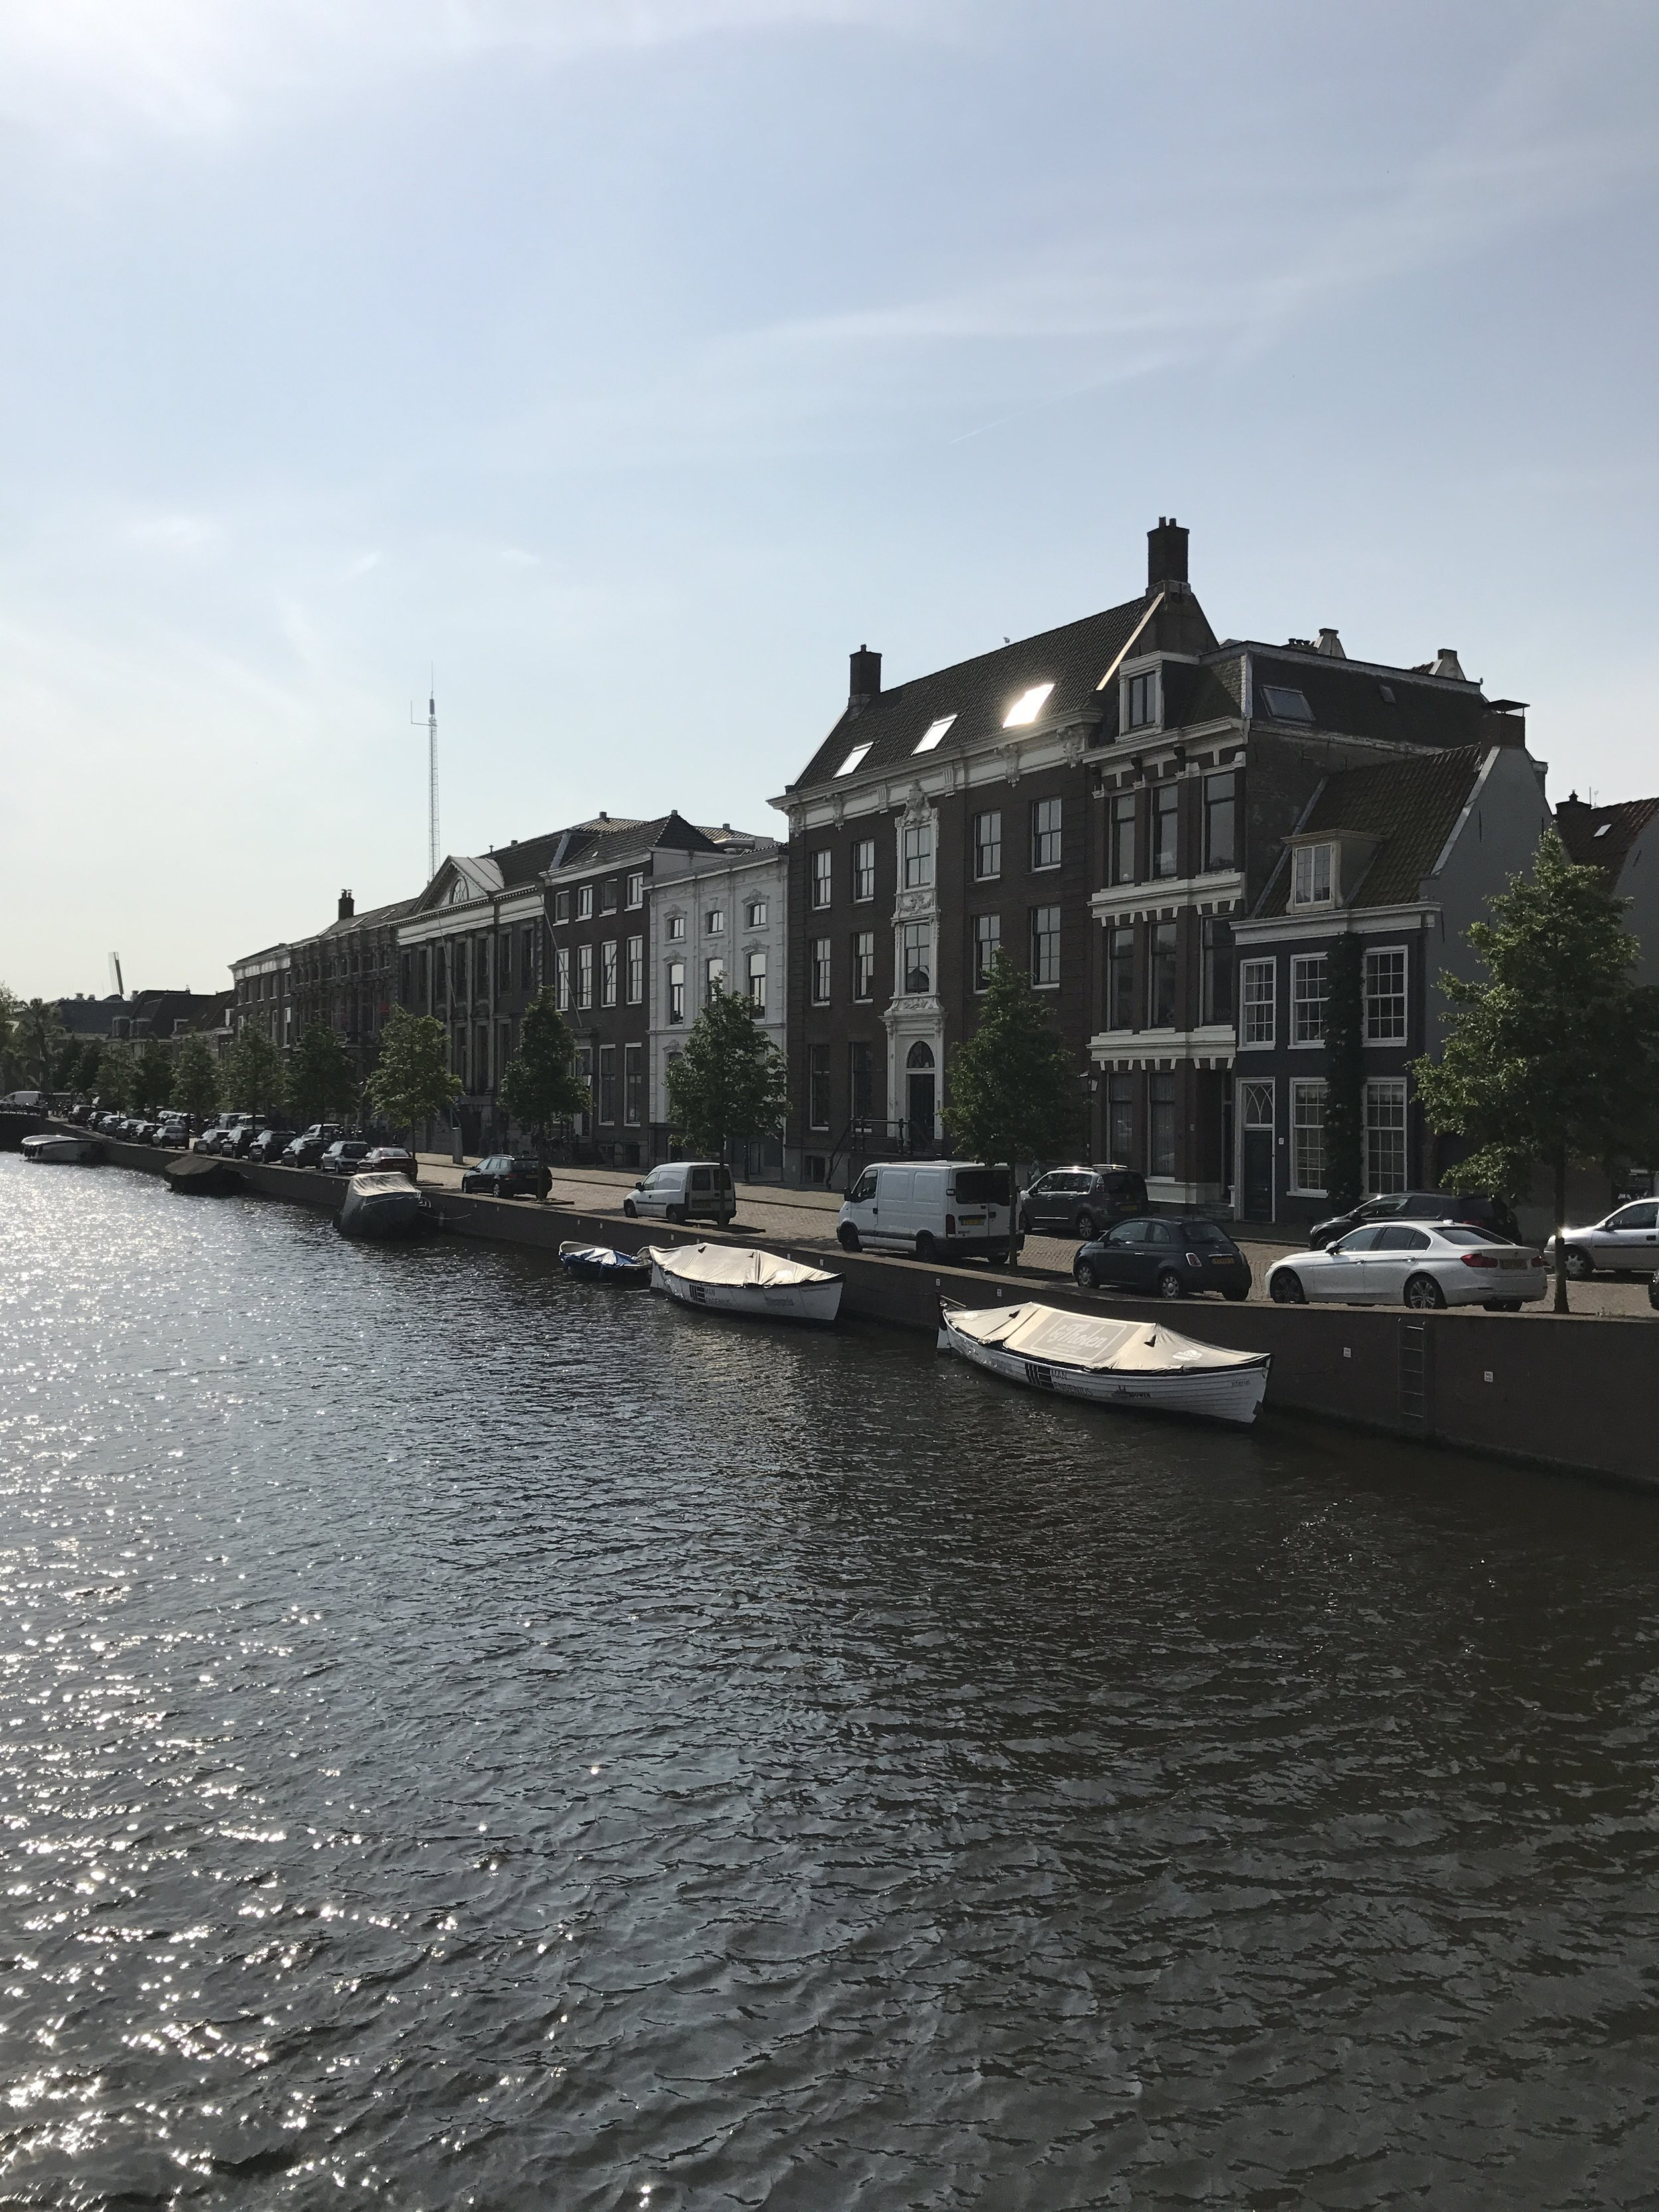 More lovely architecture along the Haarlem canels ..